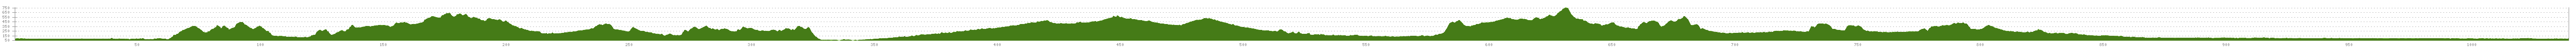 Elevation profile Rhineland-Palatinate Cycle Route